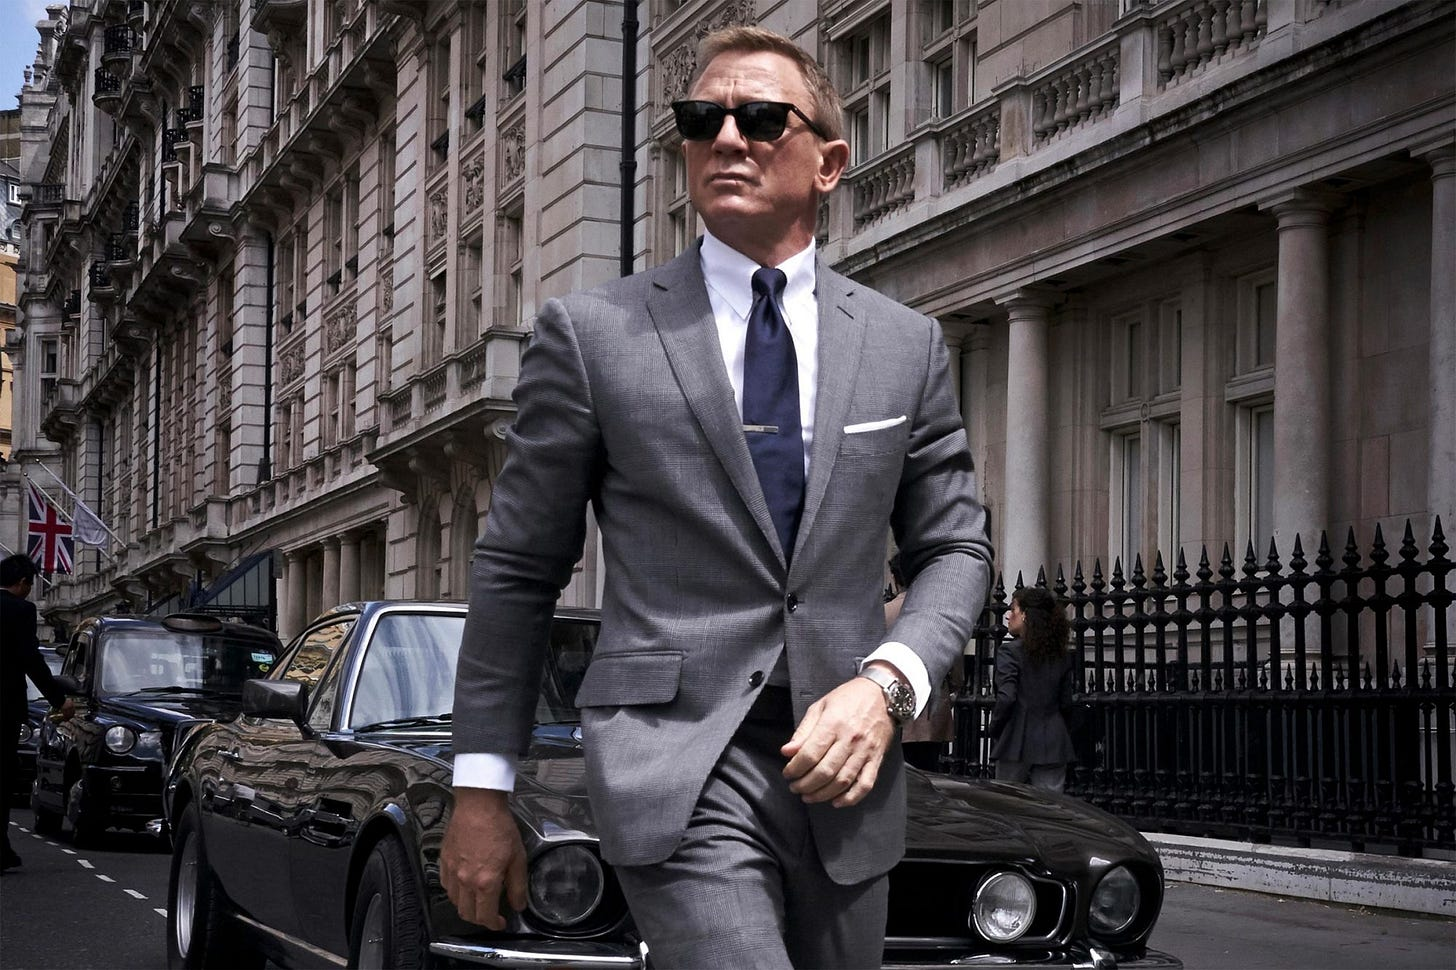 James Bond's No Time to Die Delayed to April 2021 | PEOPLE.com